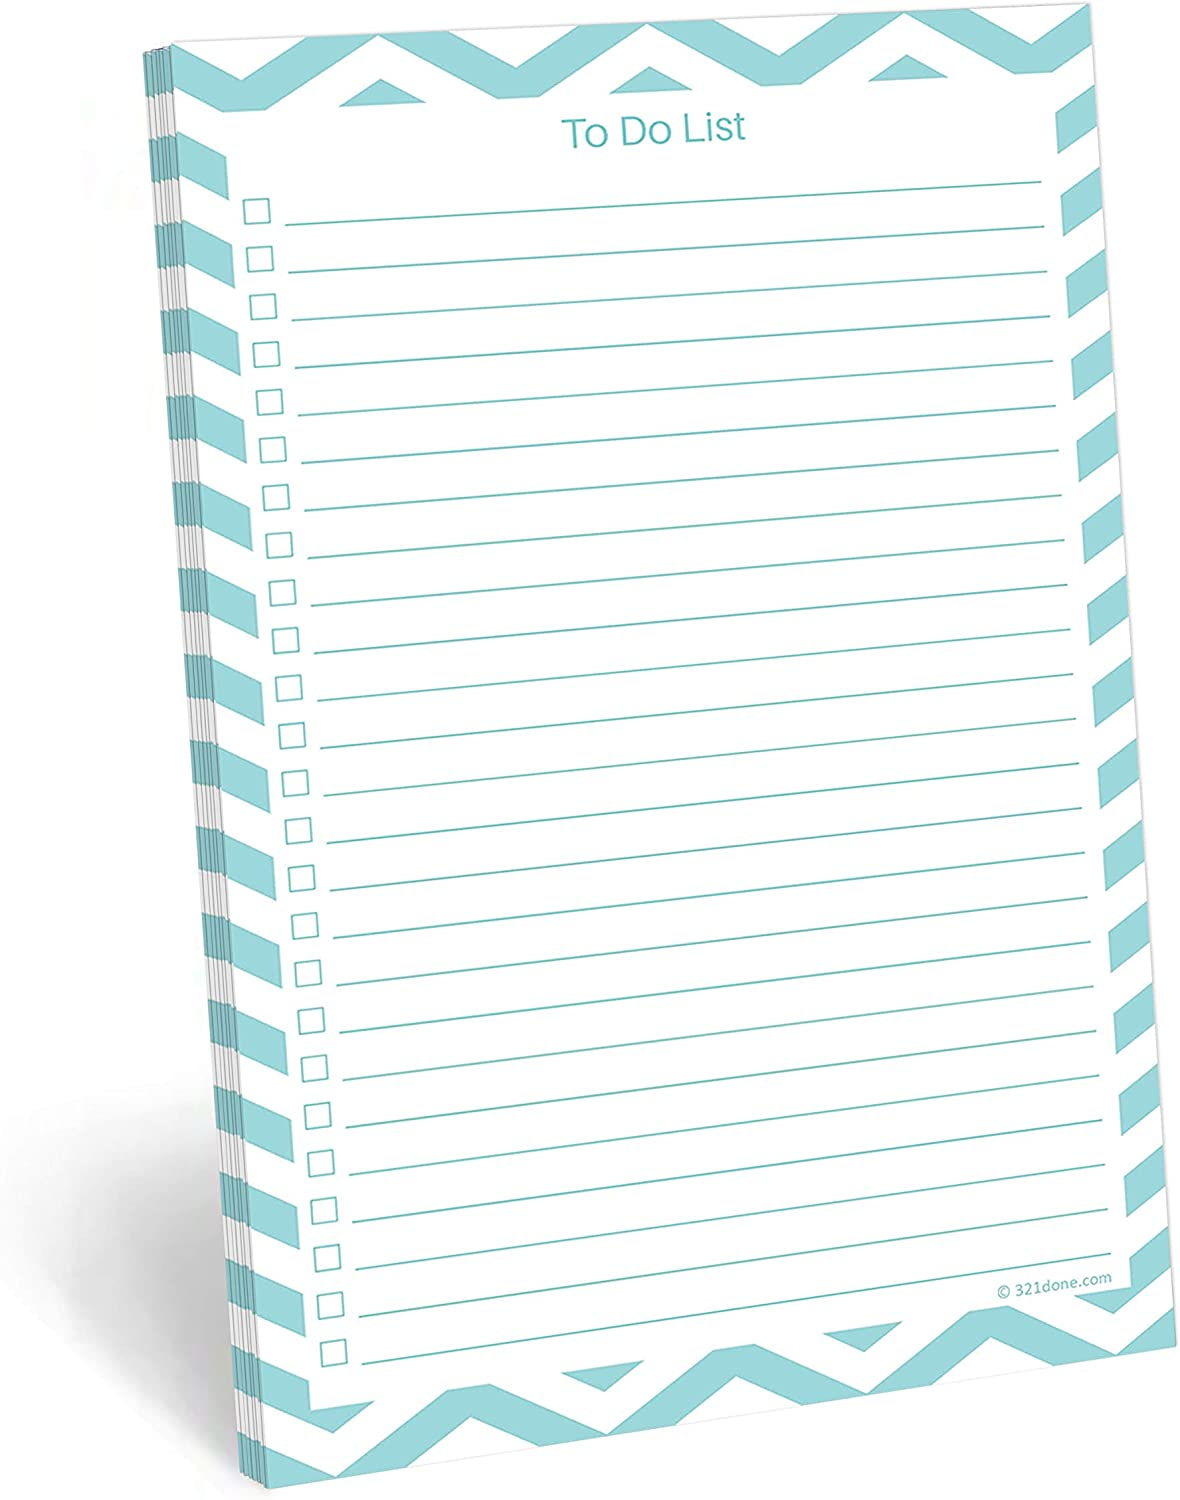 321Done to Do List Notepad - 50 Sheets (5.5